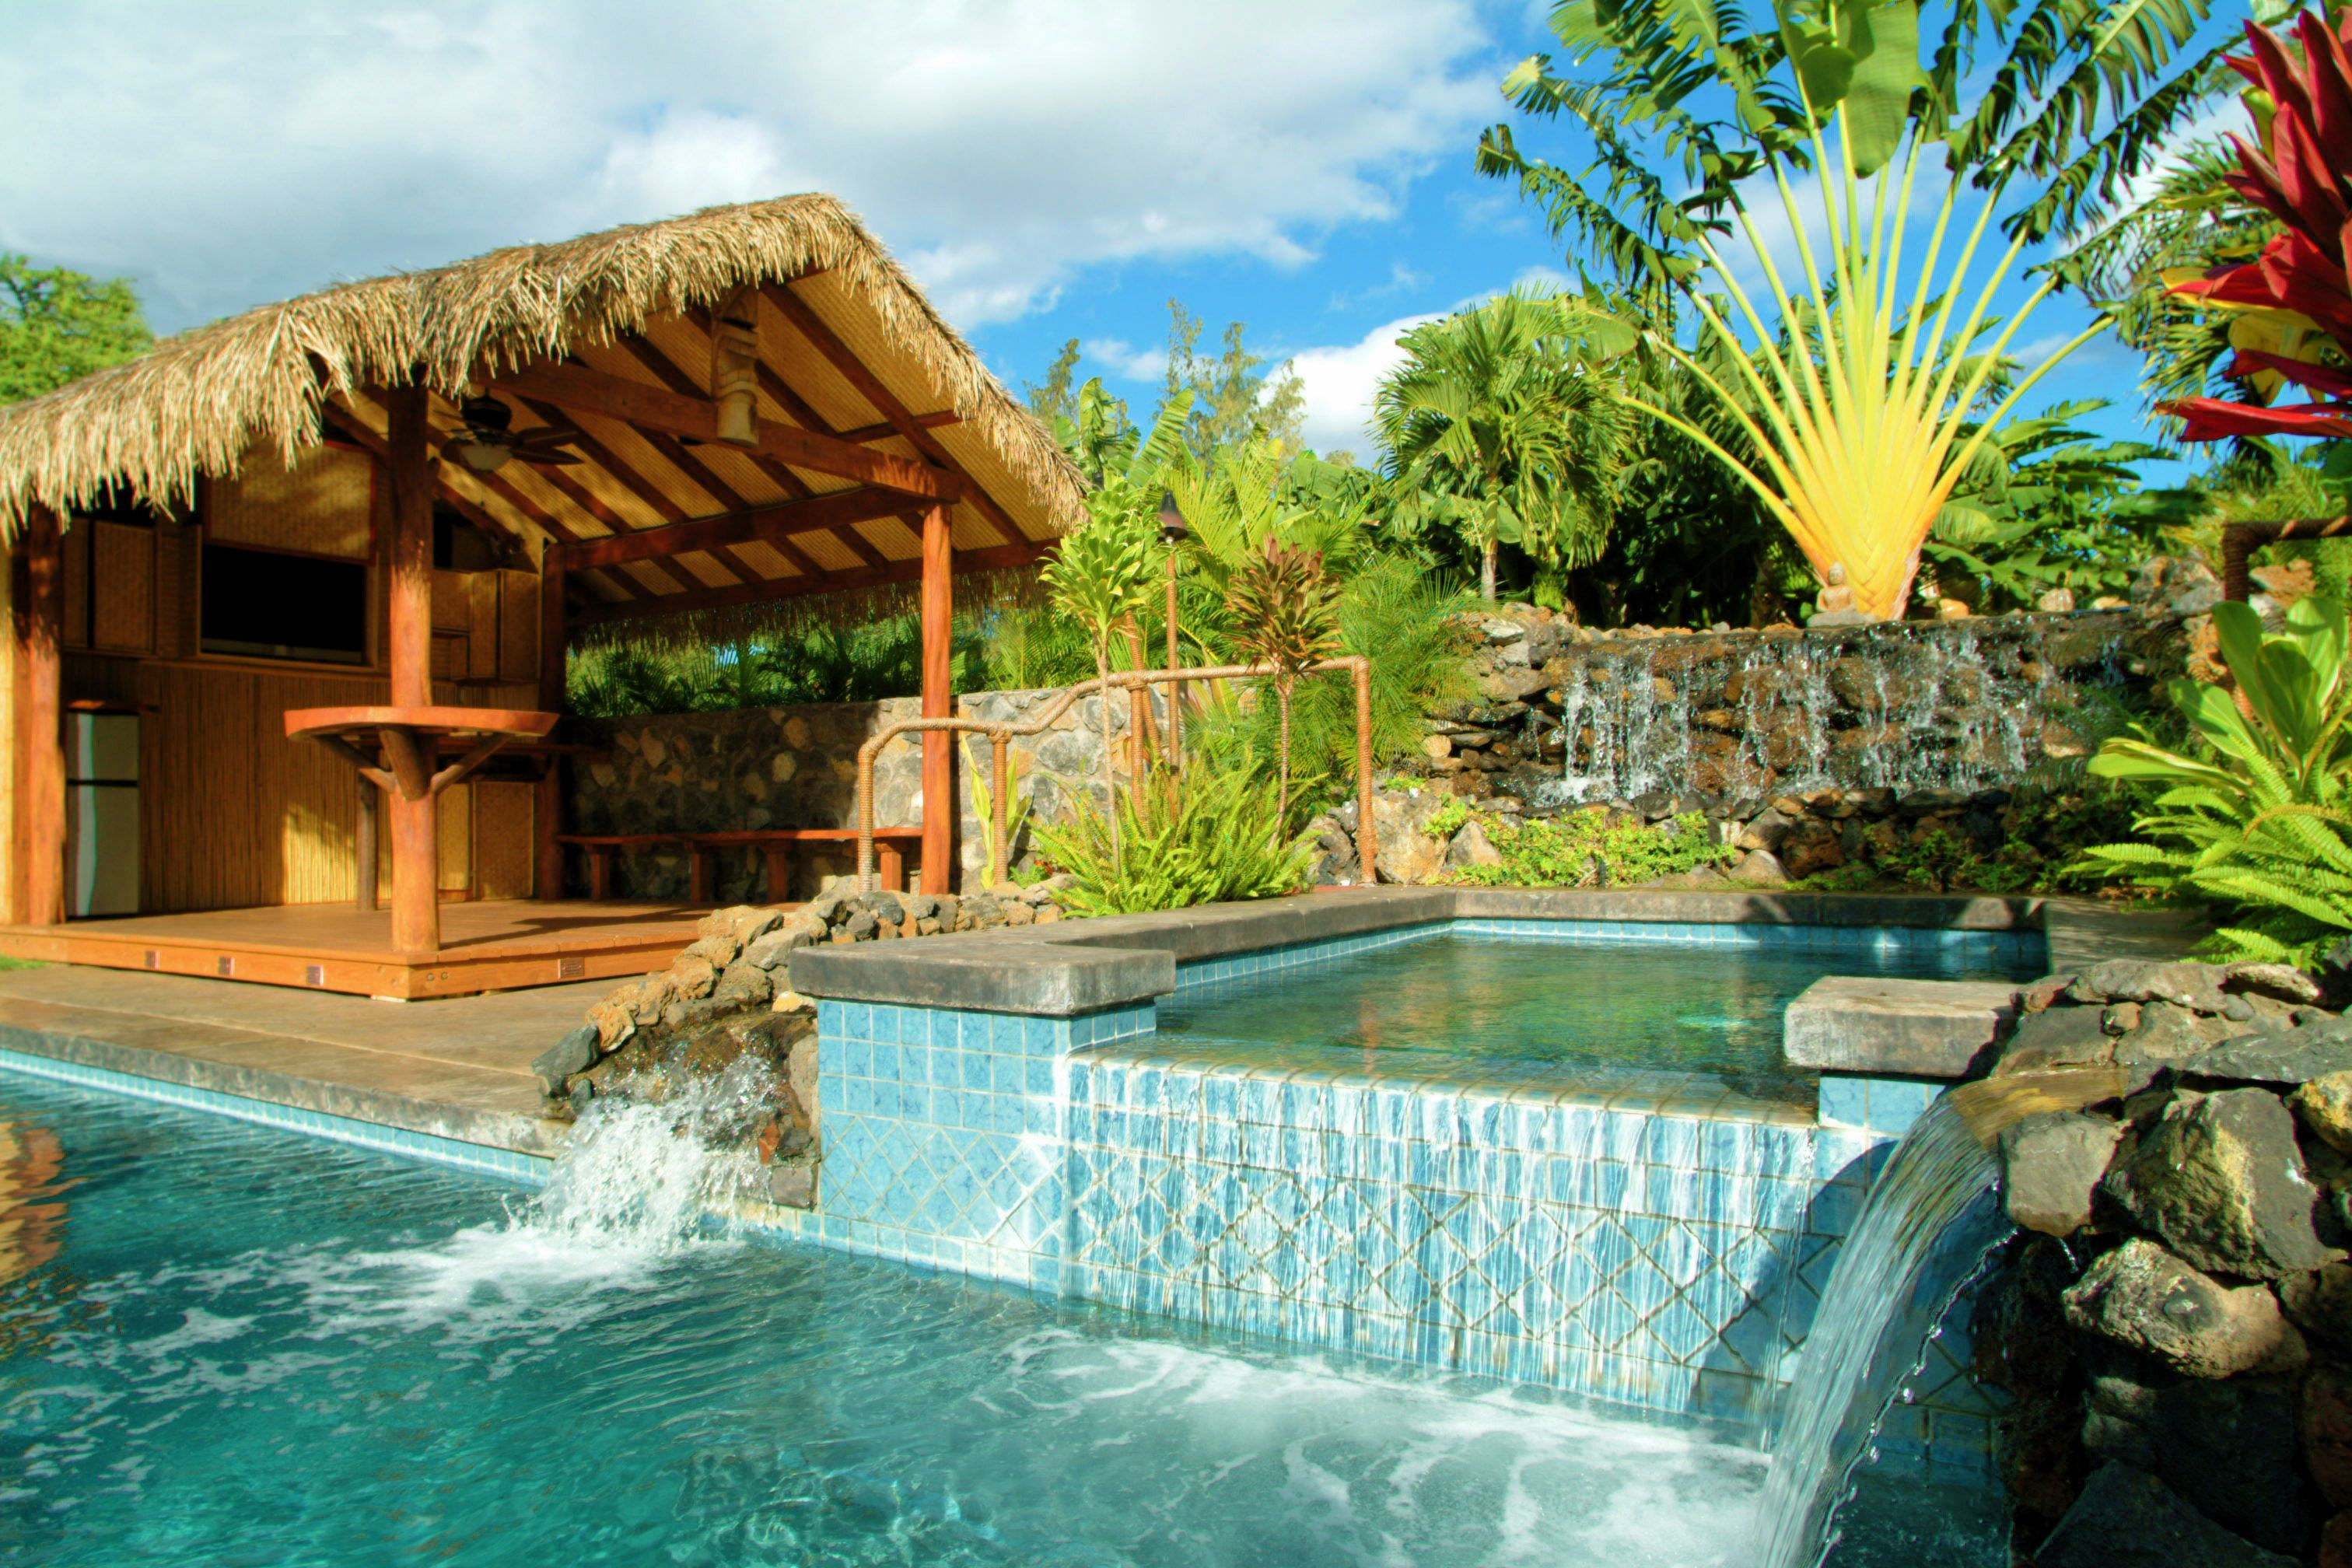 maui vacation relax here from $59 pp per night